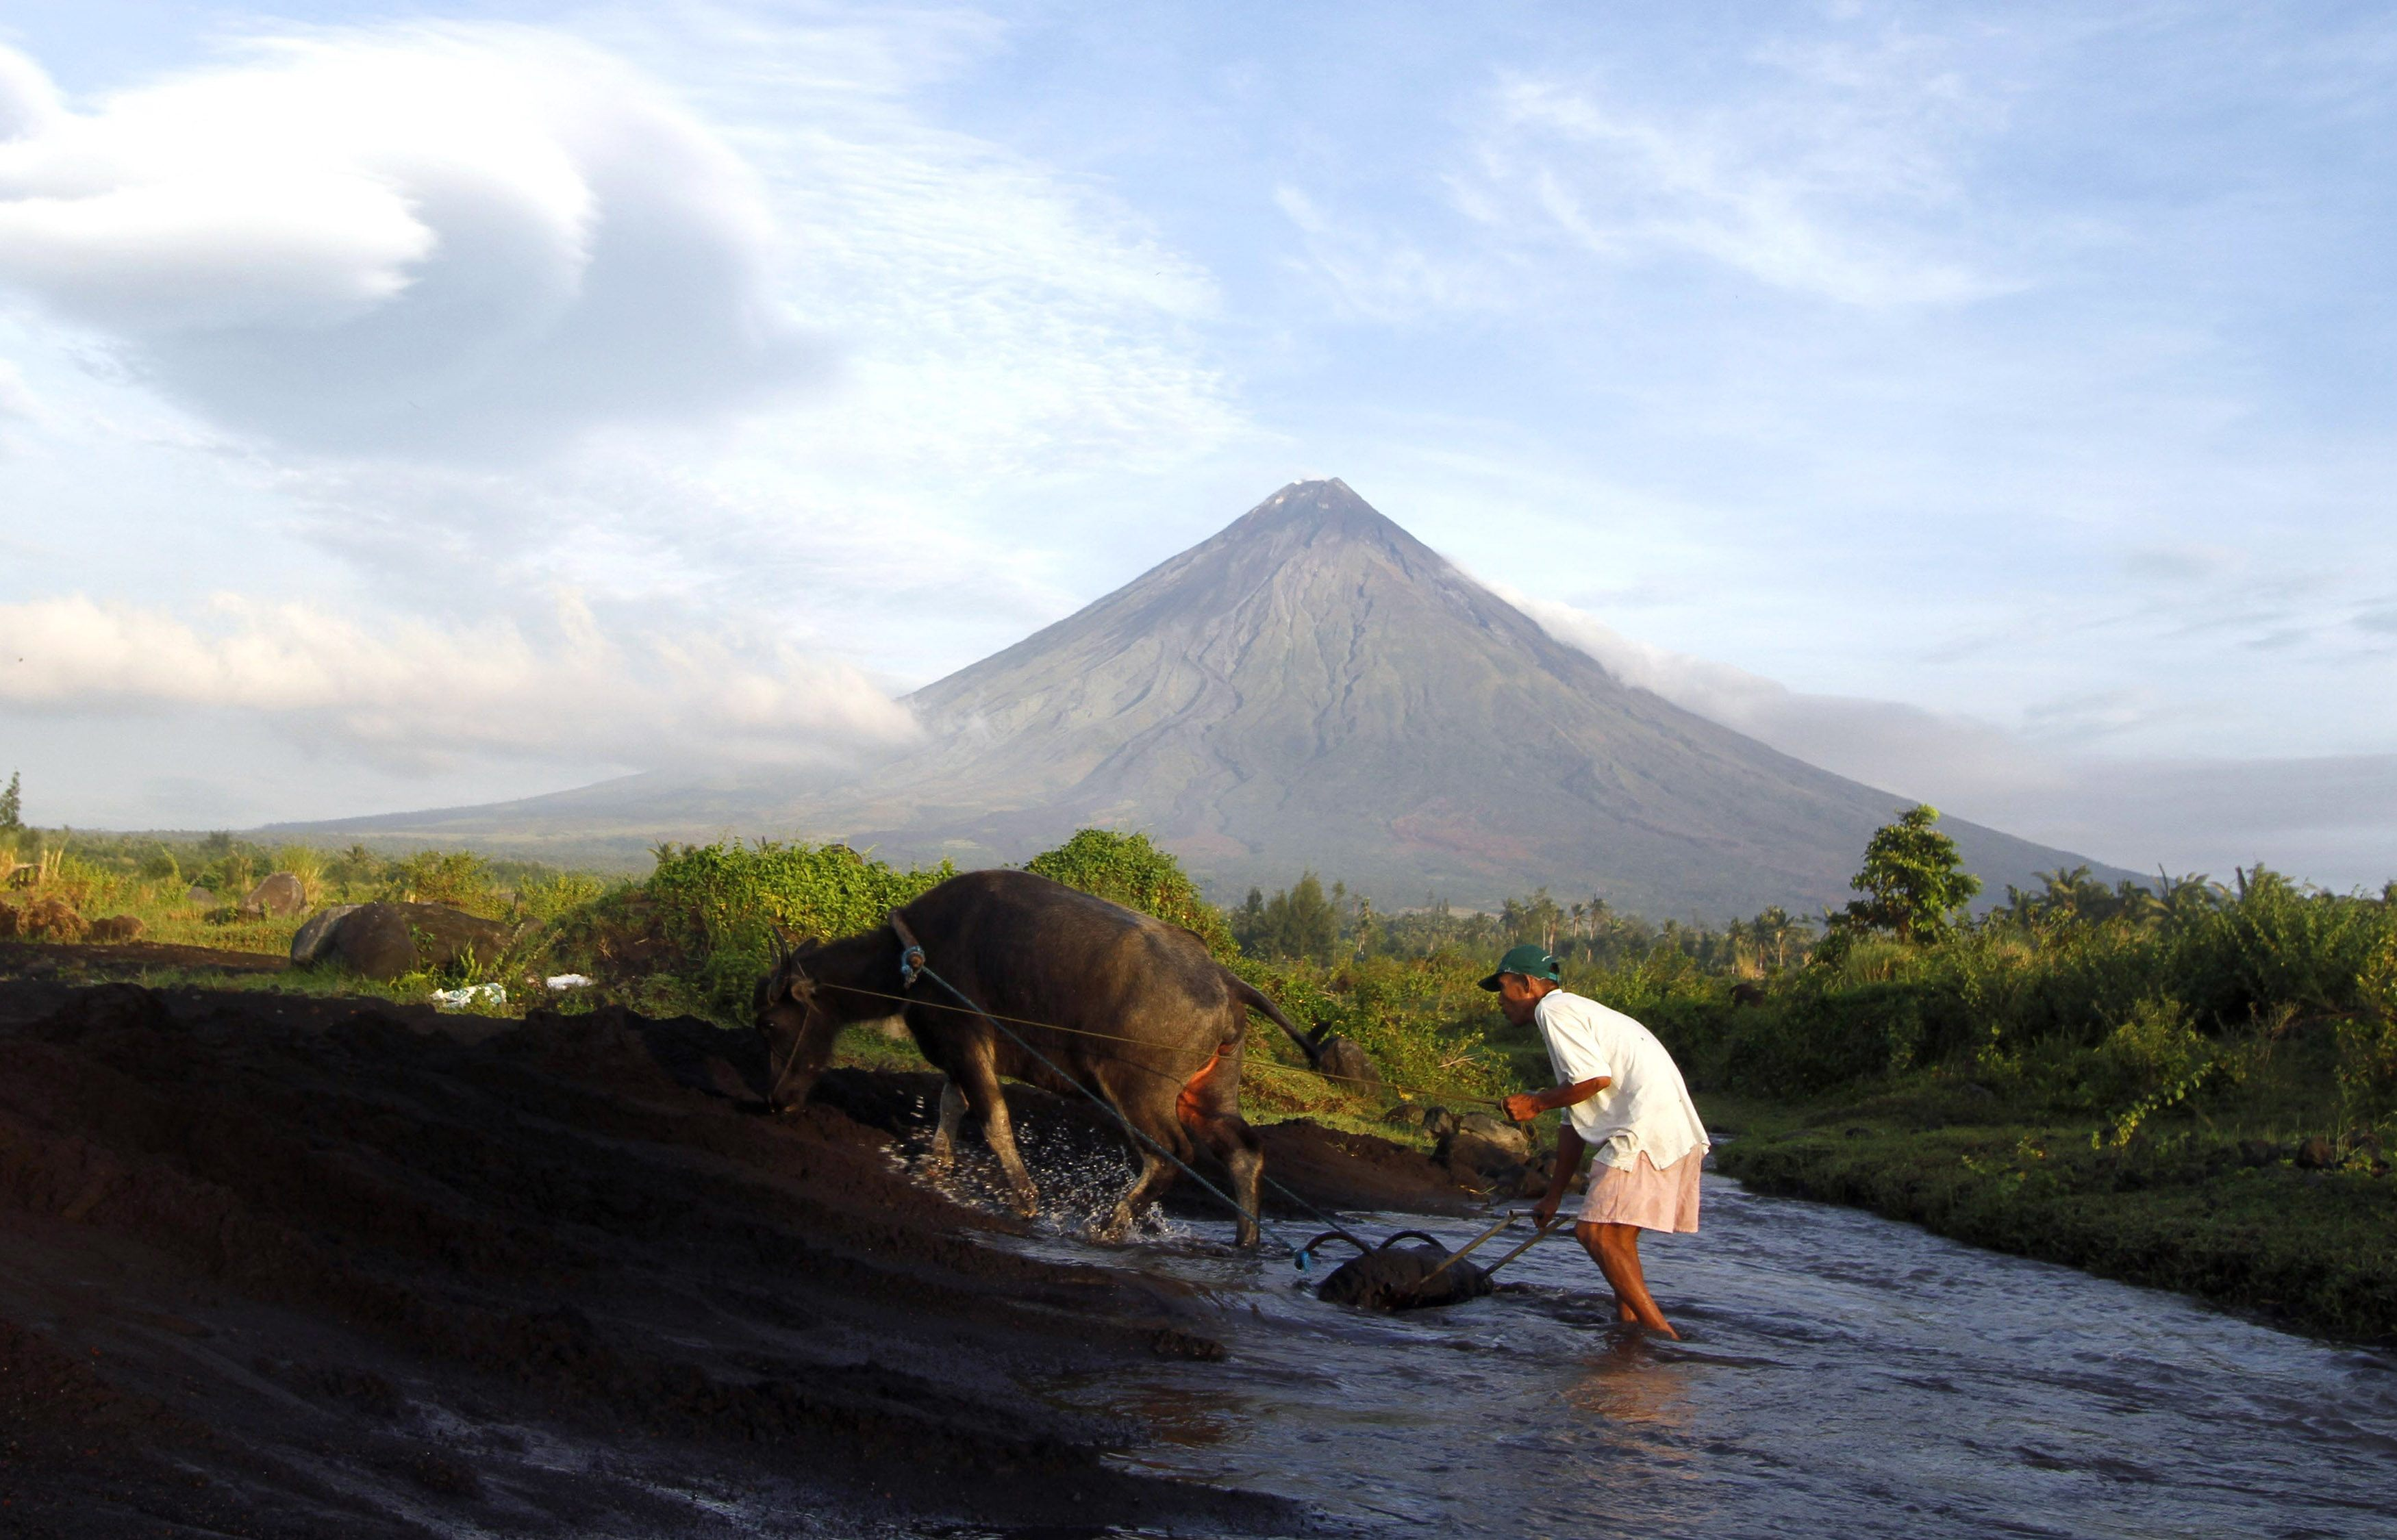 Farmer walks with his buffalo with the Mayon Volcano in the background in Albay province, Bicol region, south of Manila